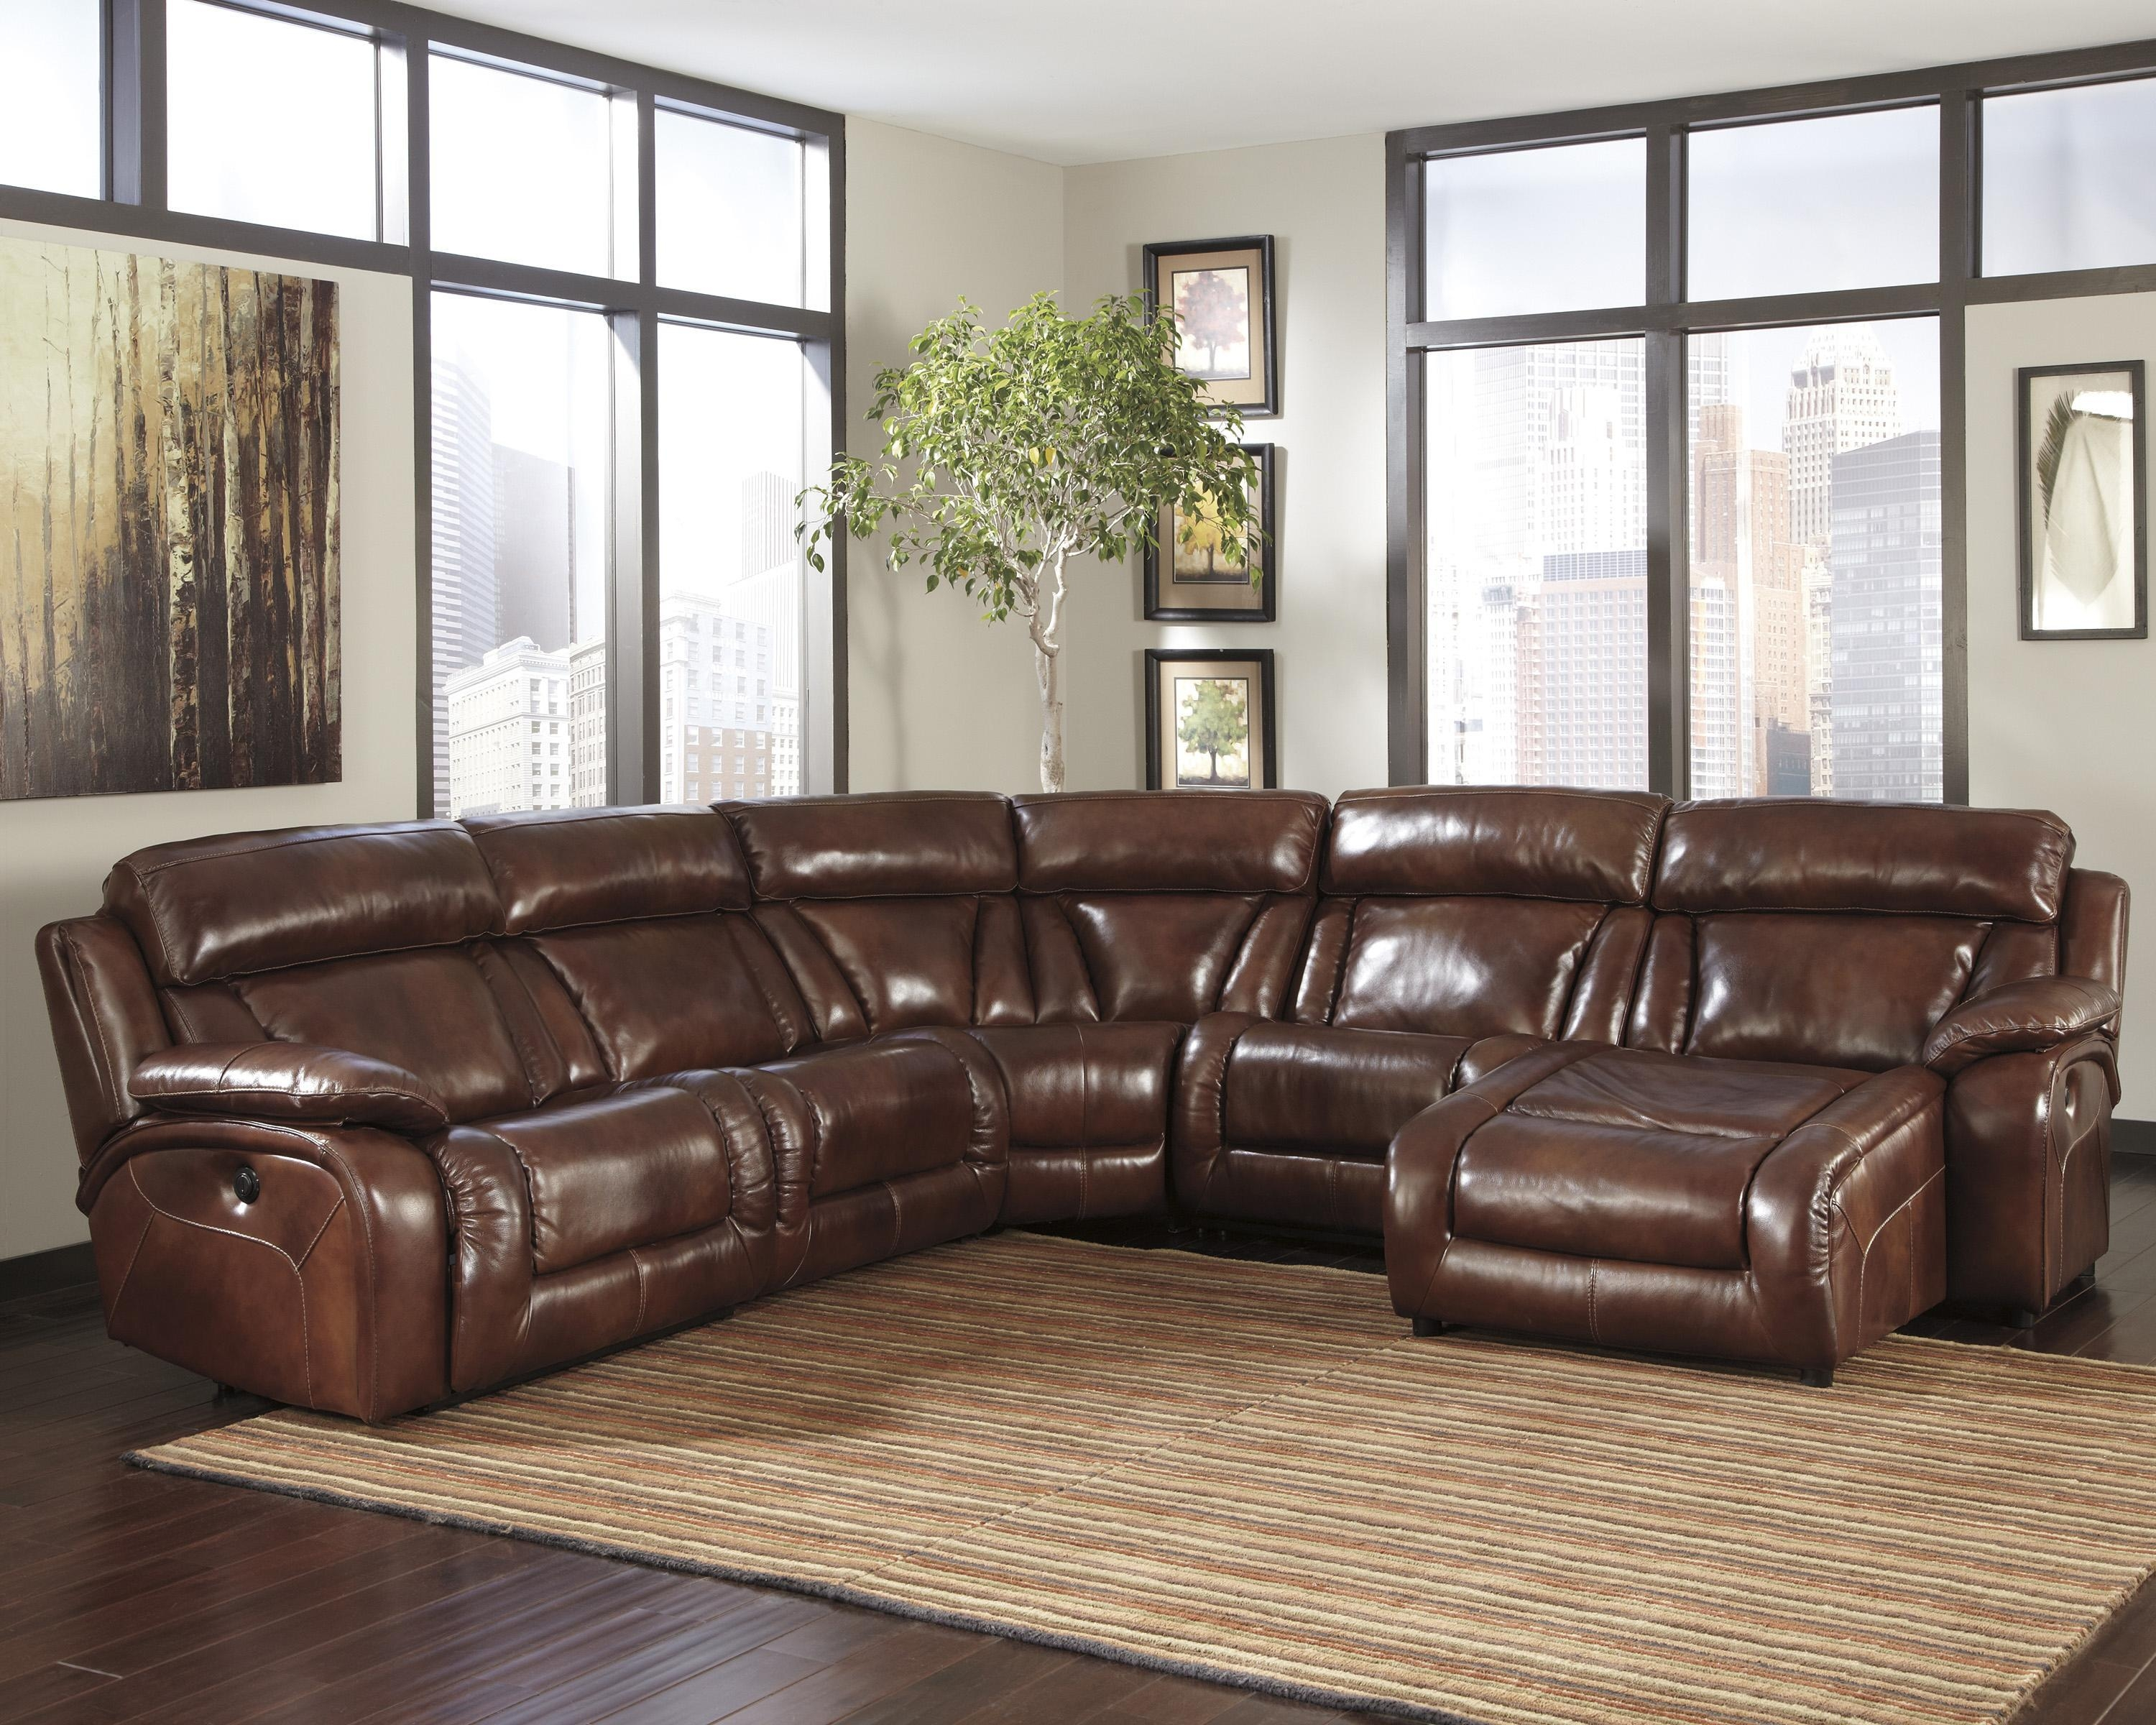 Decorating: Fill Your Living Room With Elegant Ashley Furniture In Ashley Furniture Leather Sectional Sofas (View 11 of 20)